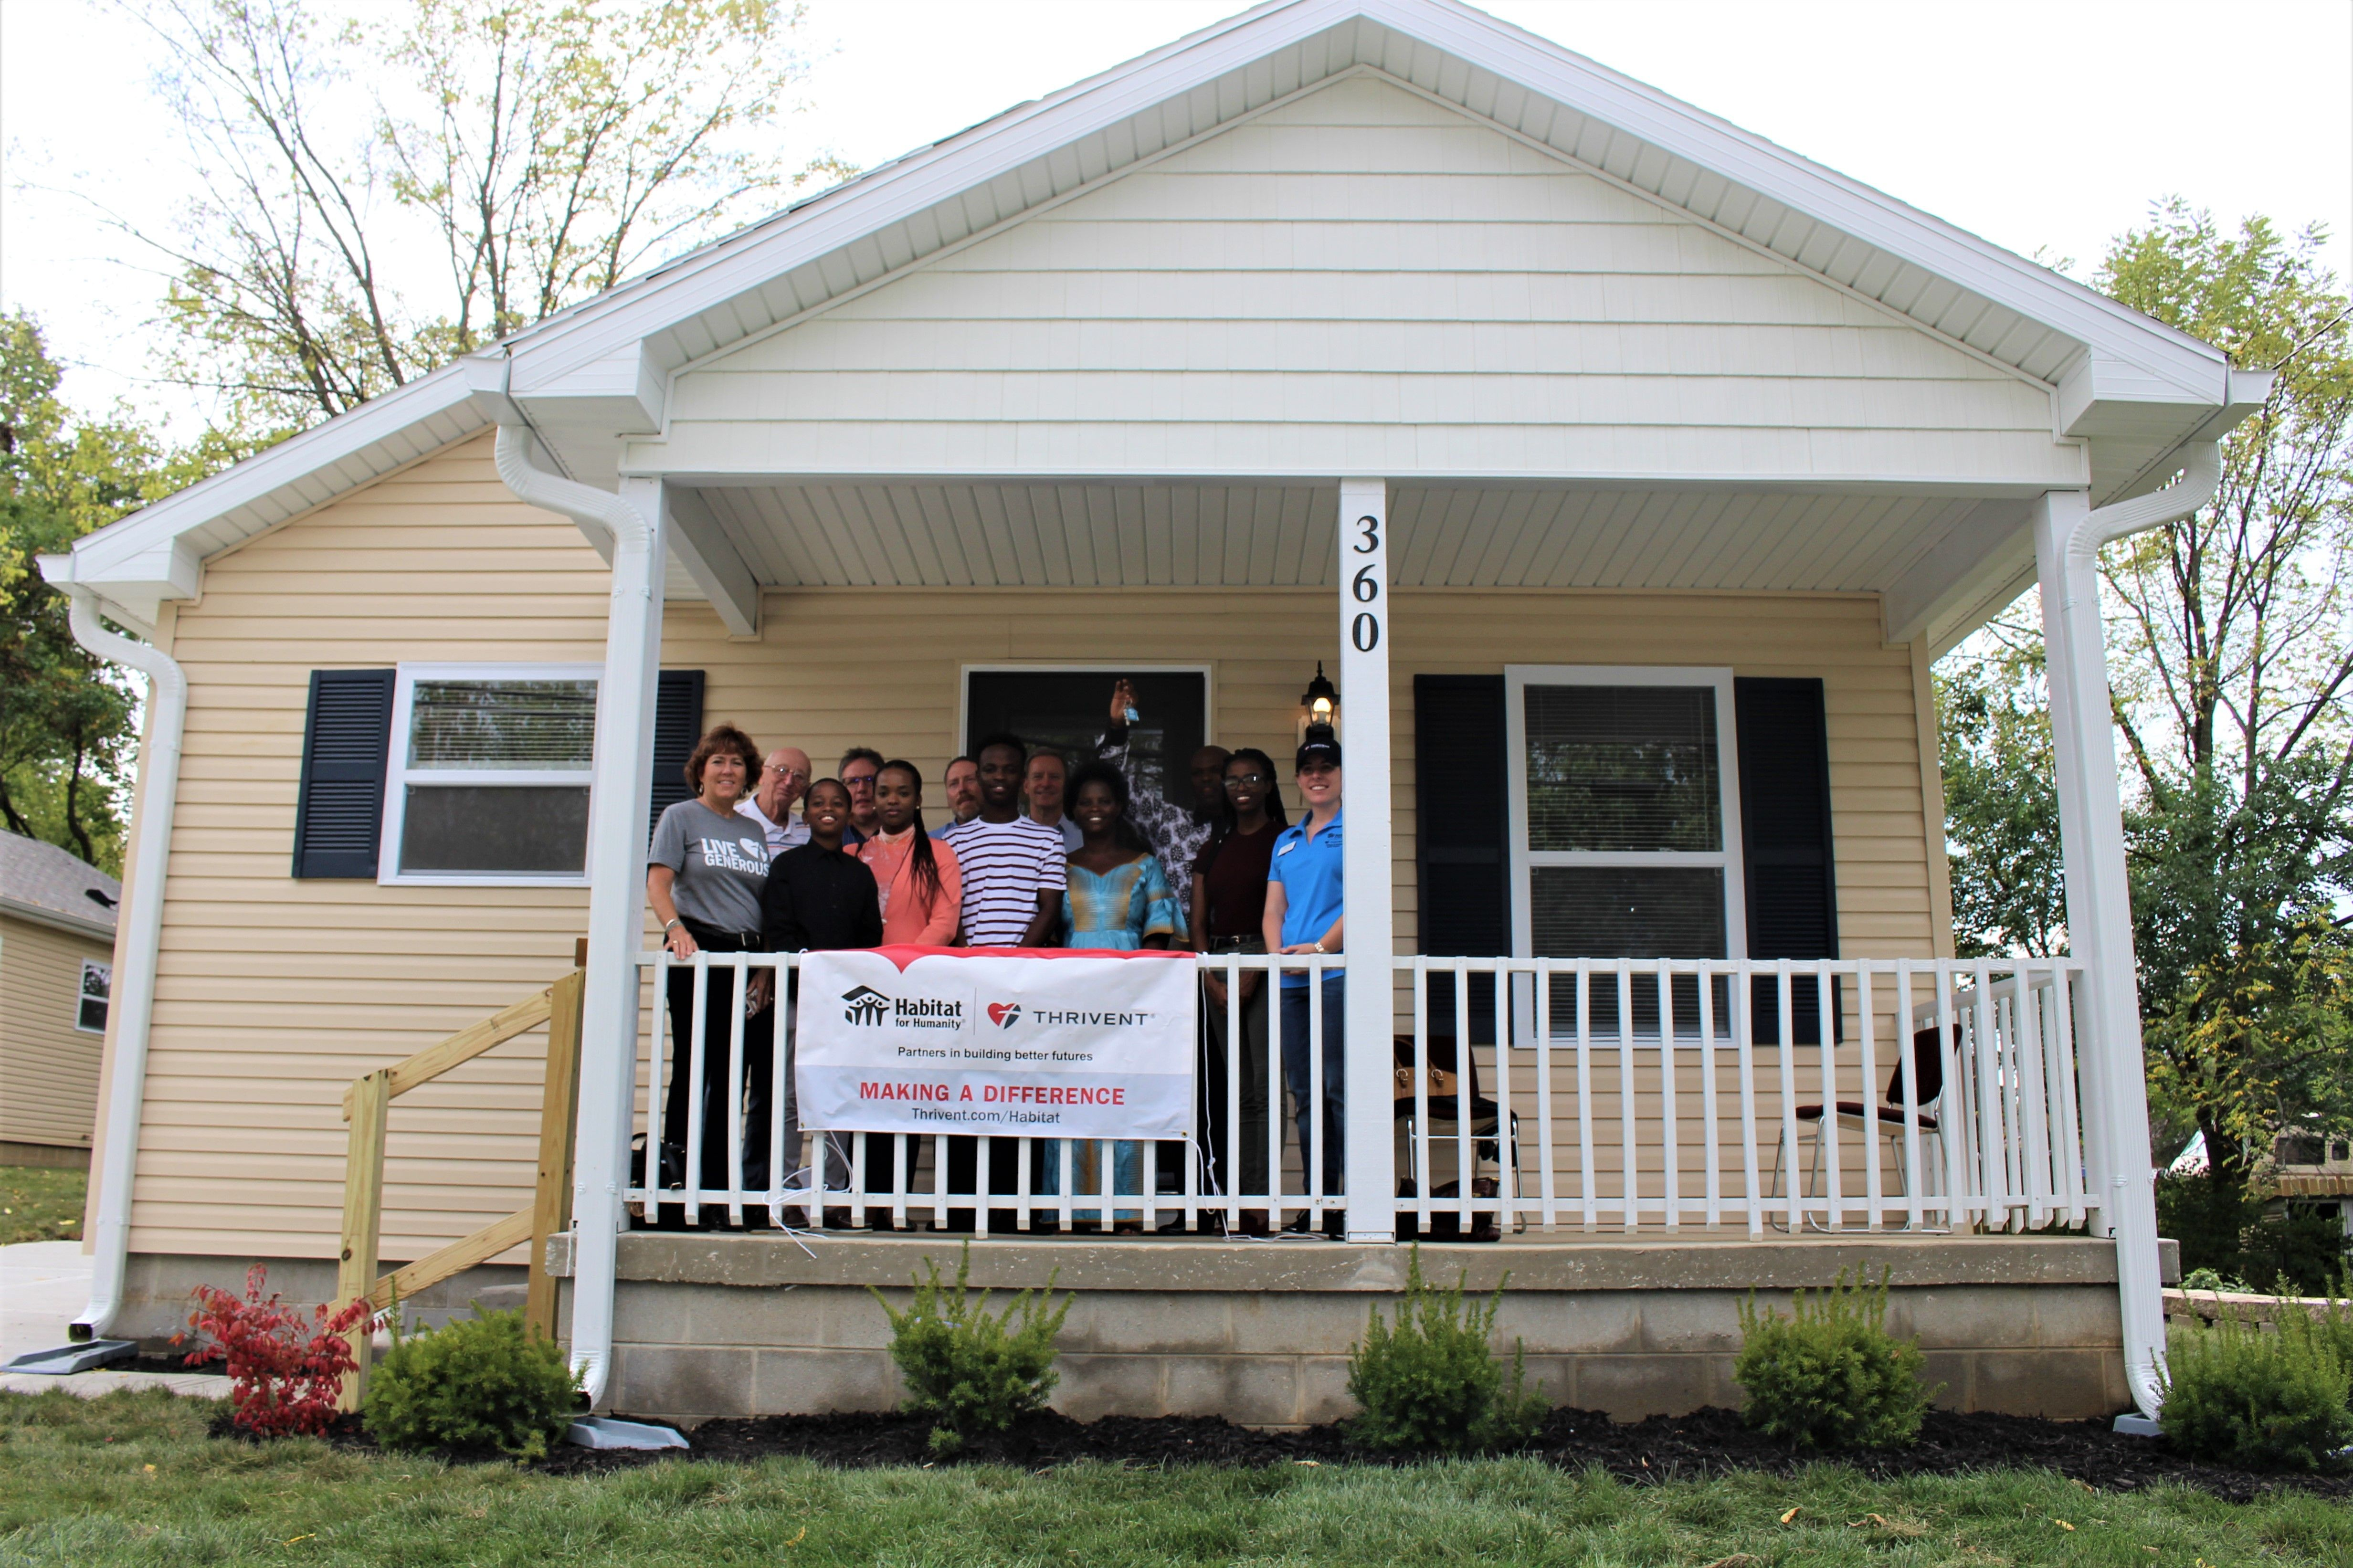 Habitat for Humanity of Greater Dayton and Thrivent Partner to help improve the lives of a local family